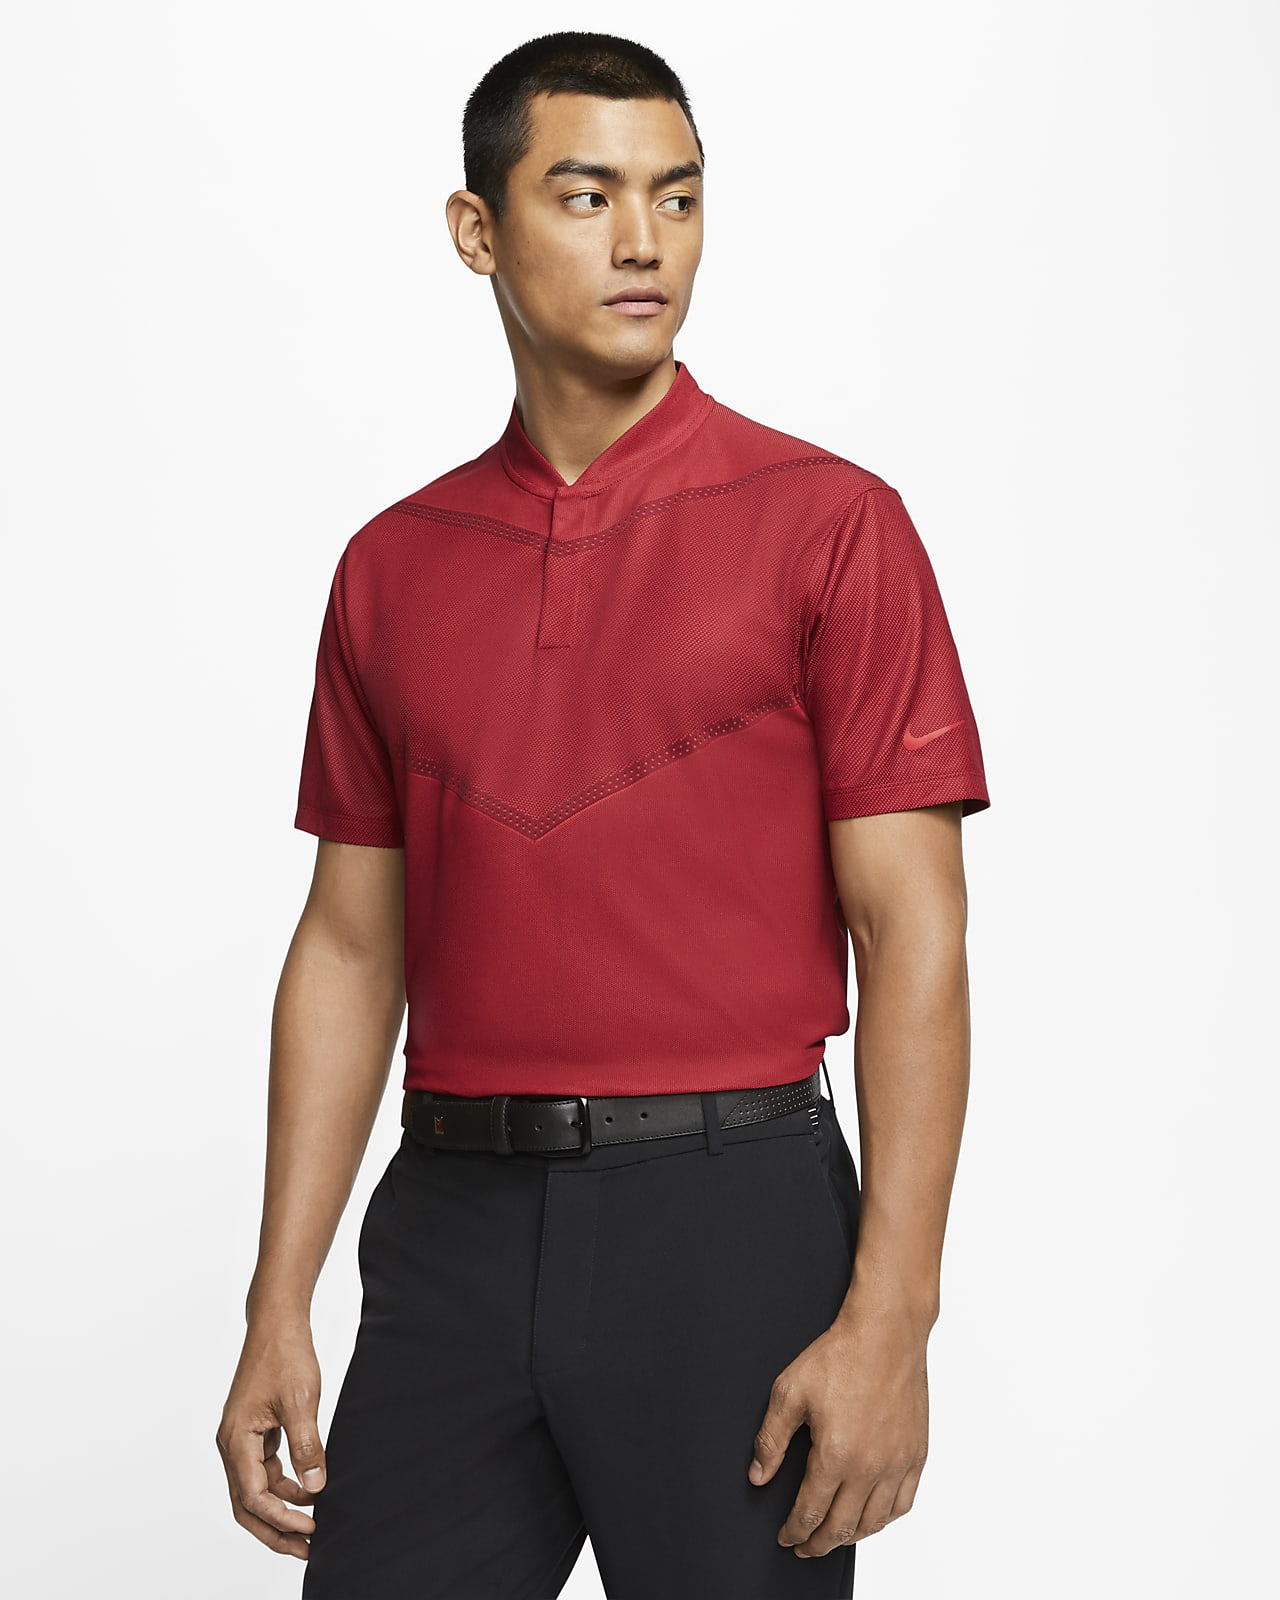 Nike Dri-FIT Tiger Woods Golf-Poloshirt für Herren